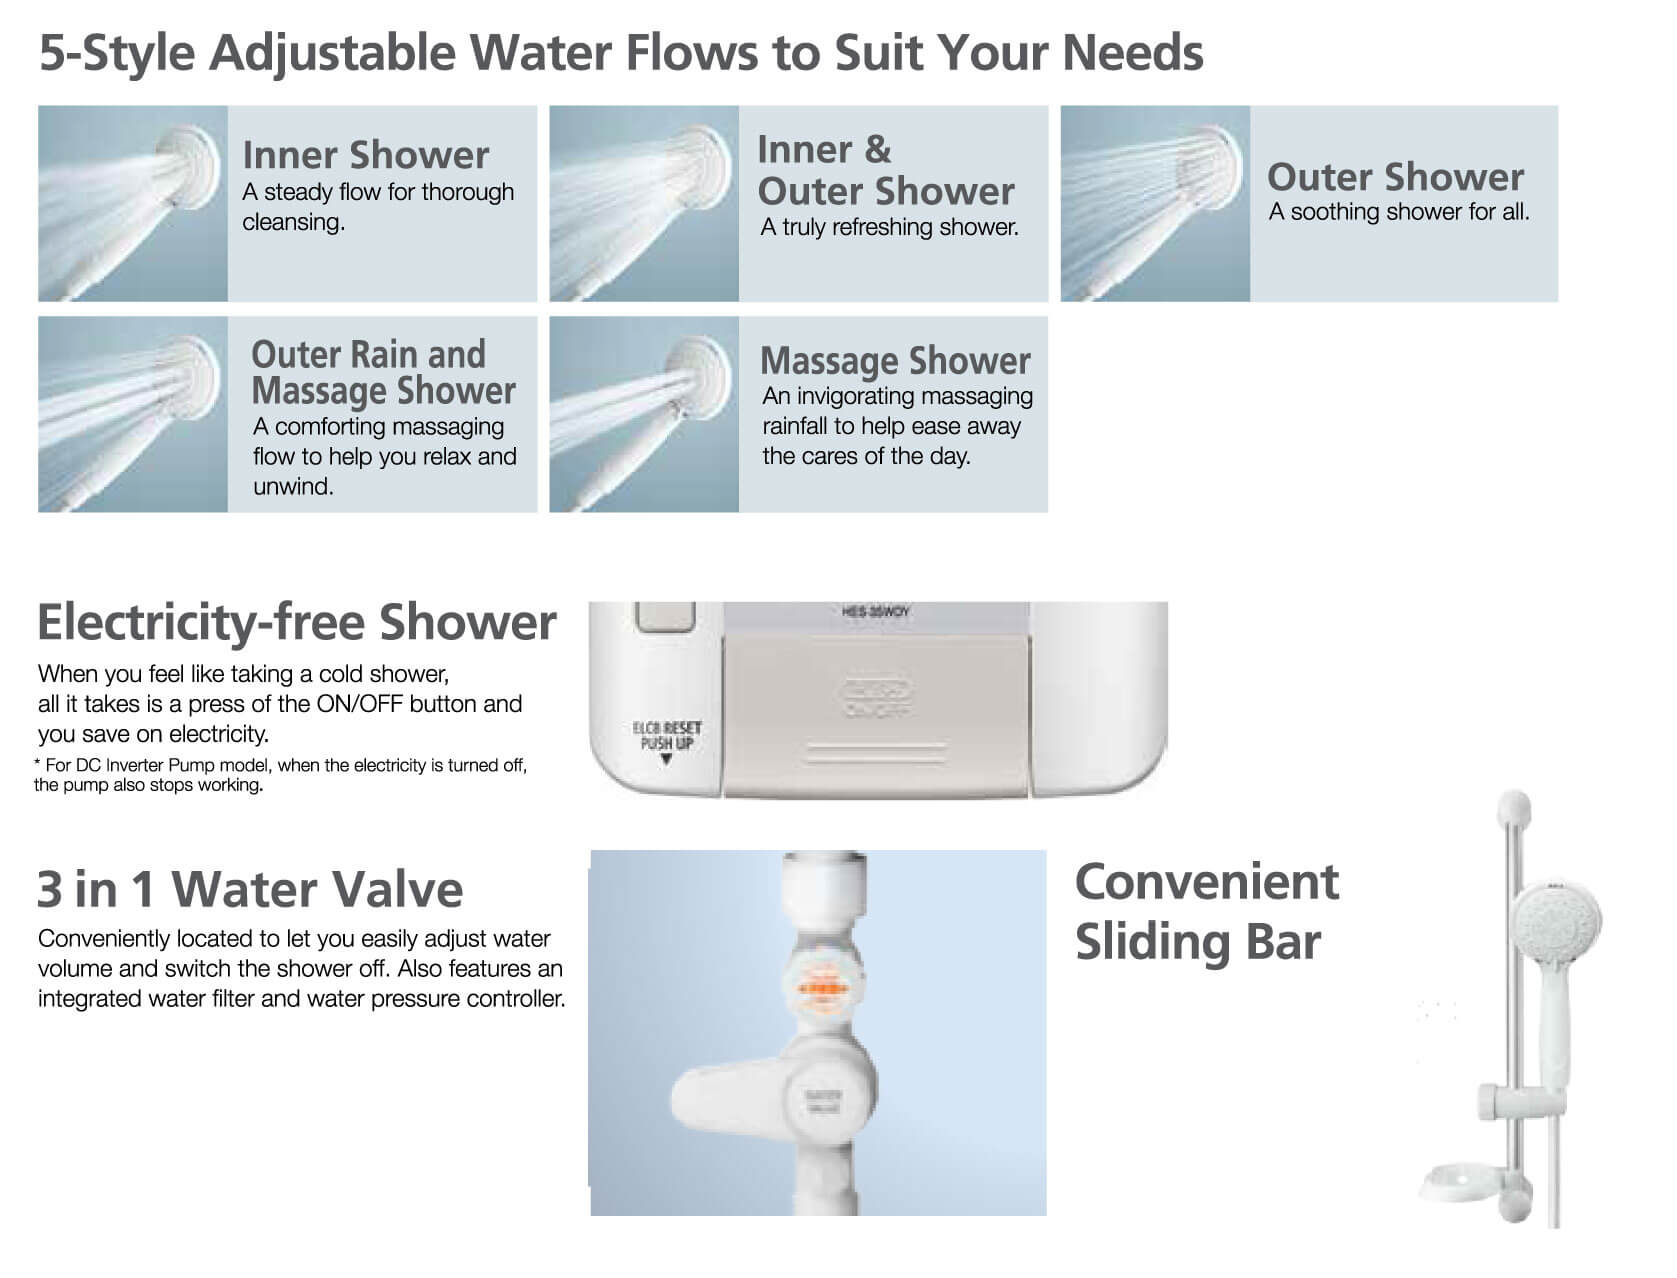 5-Style Adjustable water flows